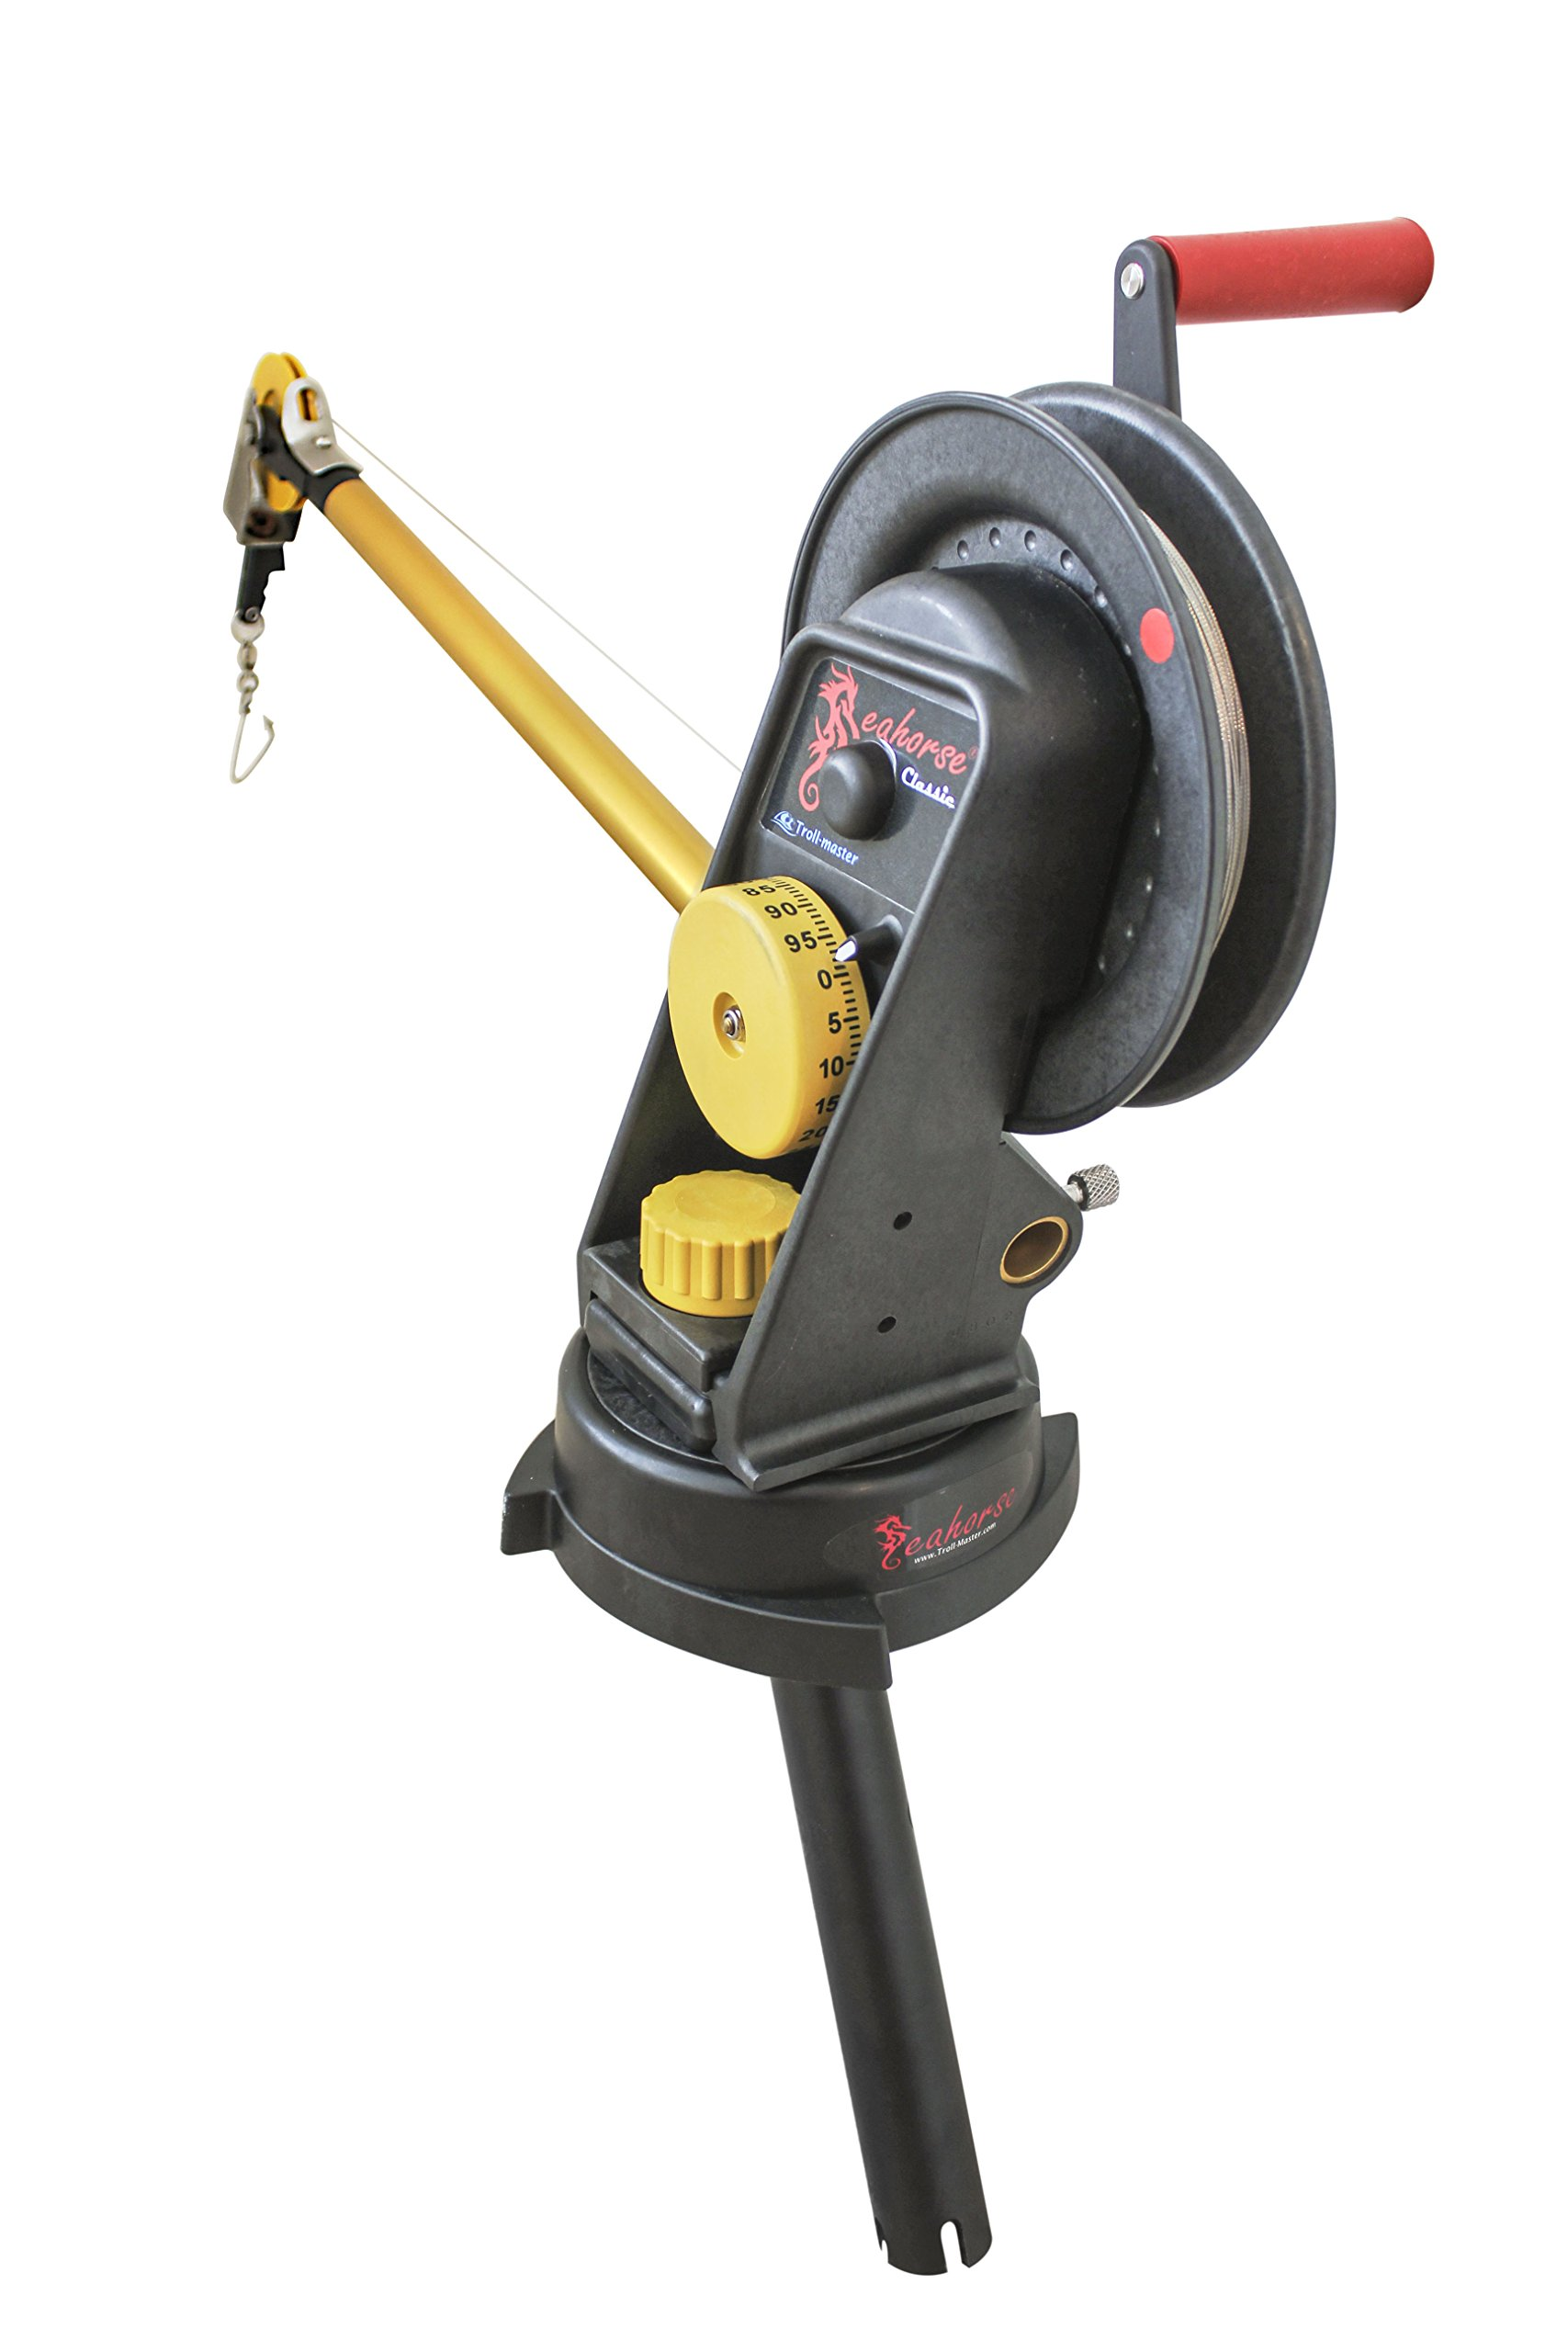 Seahorse Manual Downrigger with Swivel Base and Gimbal Mount By Troll-master by Seahorse